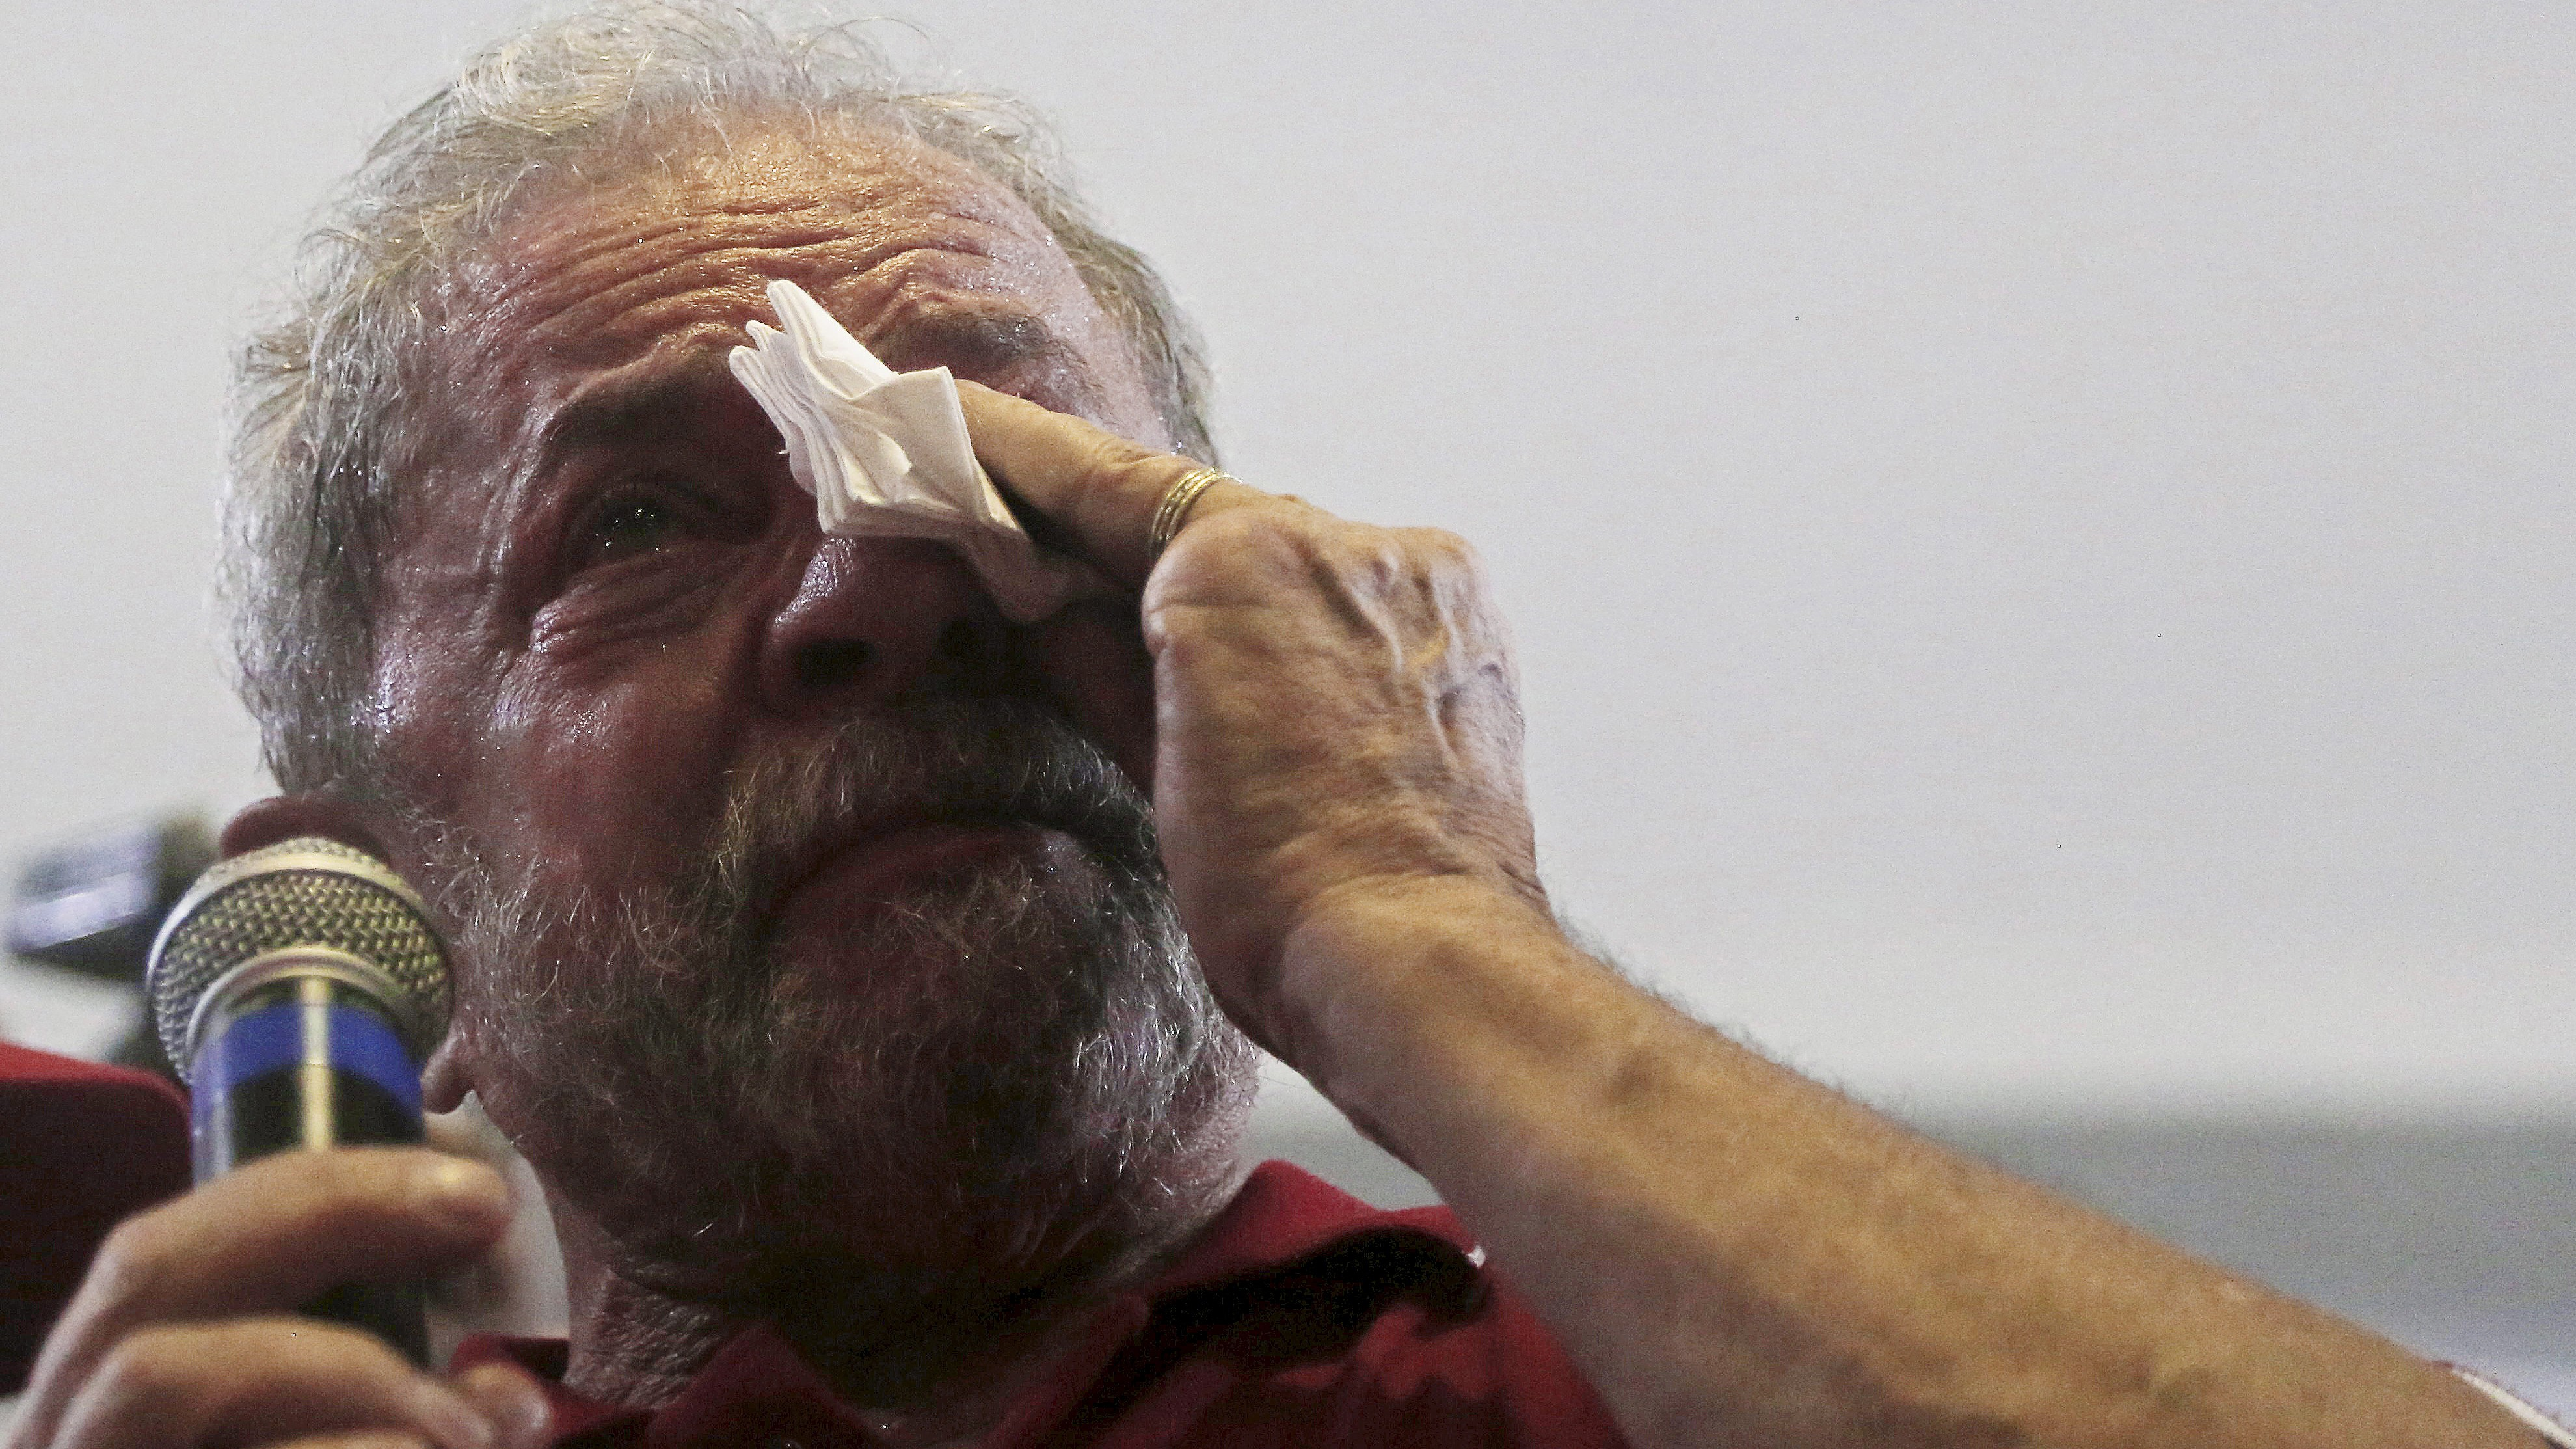 Former Brazilian President Luiz Inacio Lula da Silva cries as he speaks to supporters at the bank workers' trade union site in Sao Paulo, Brazil, March 4, 2016. REUTERS/Paulo Whitaker      TPX IMAGES OF THE DAY      - RTS9DPN